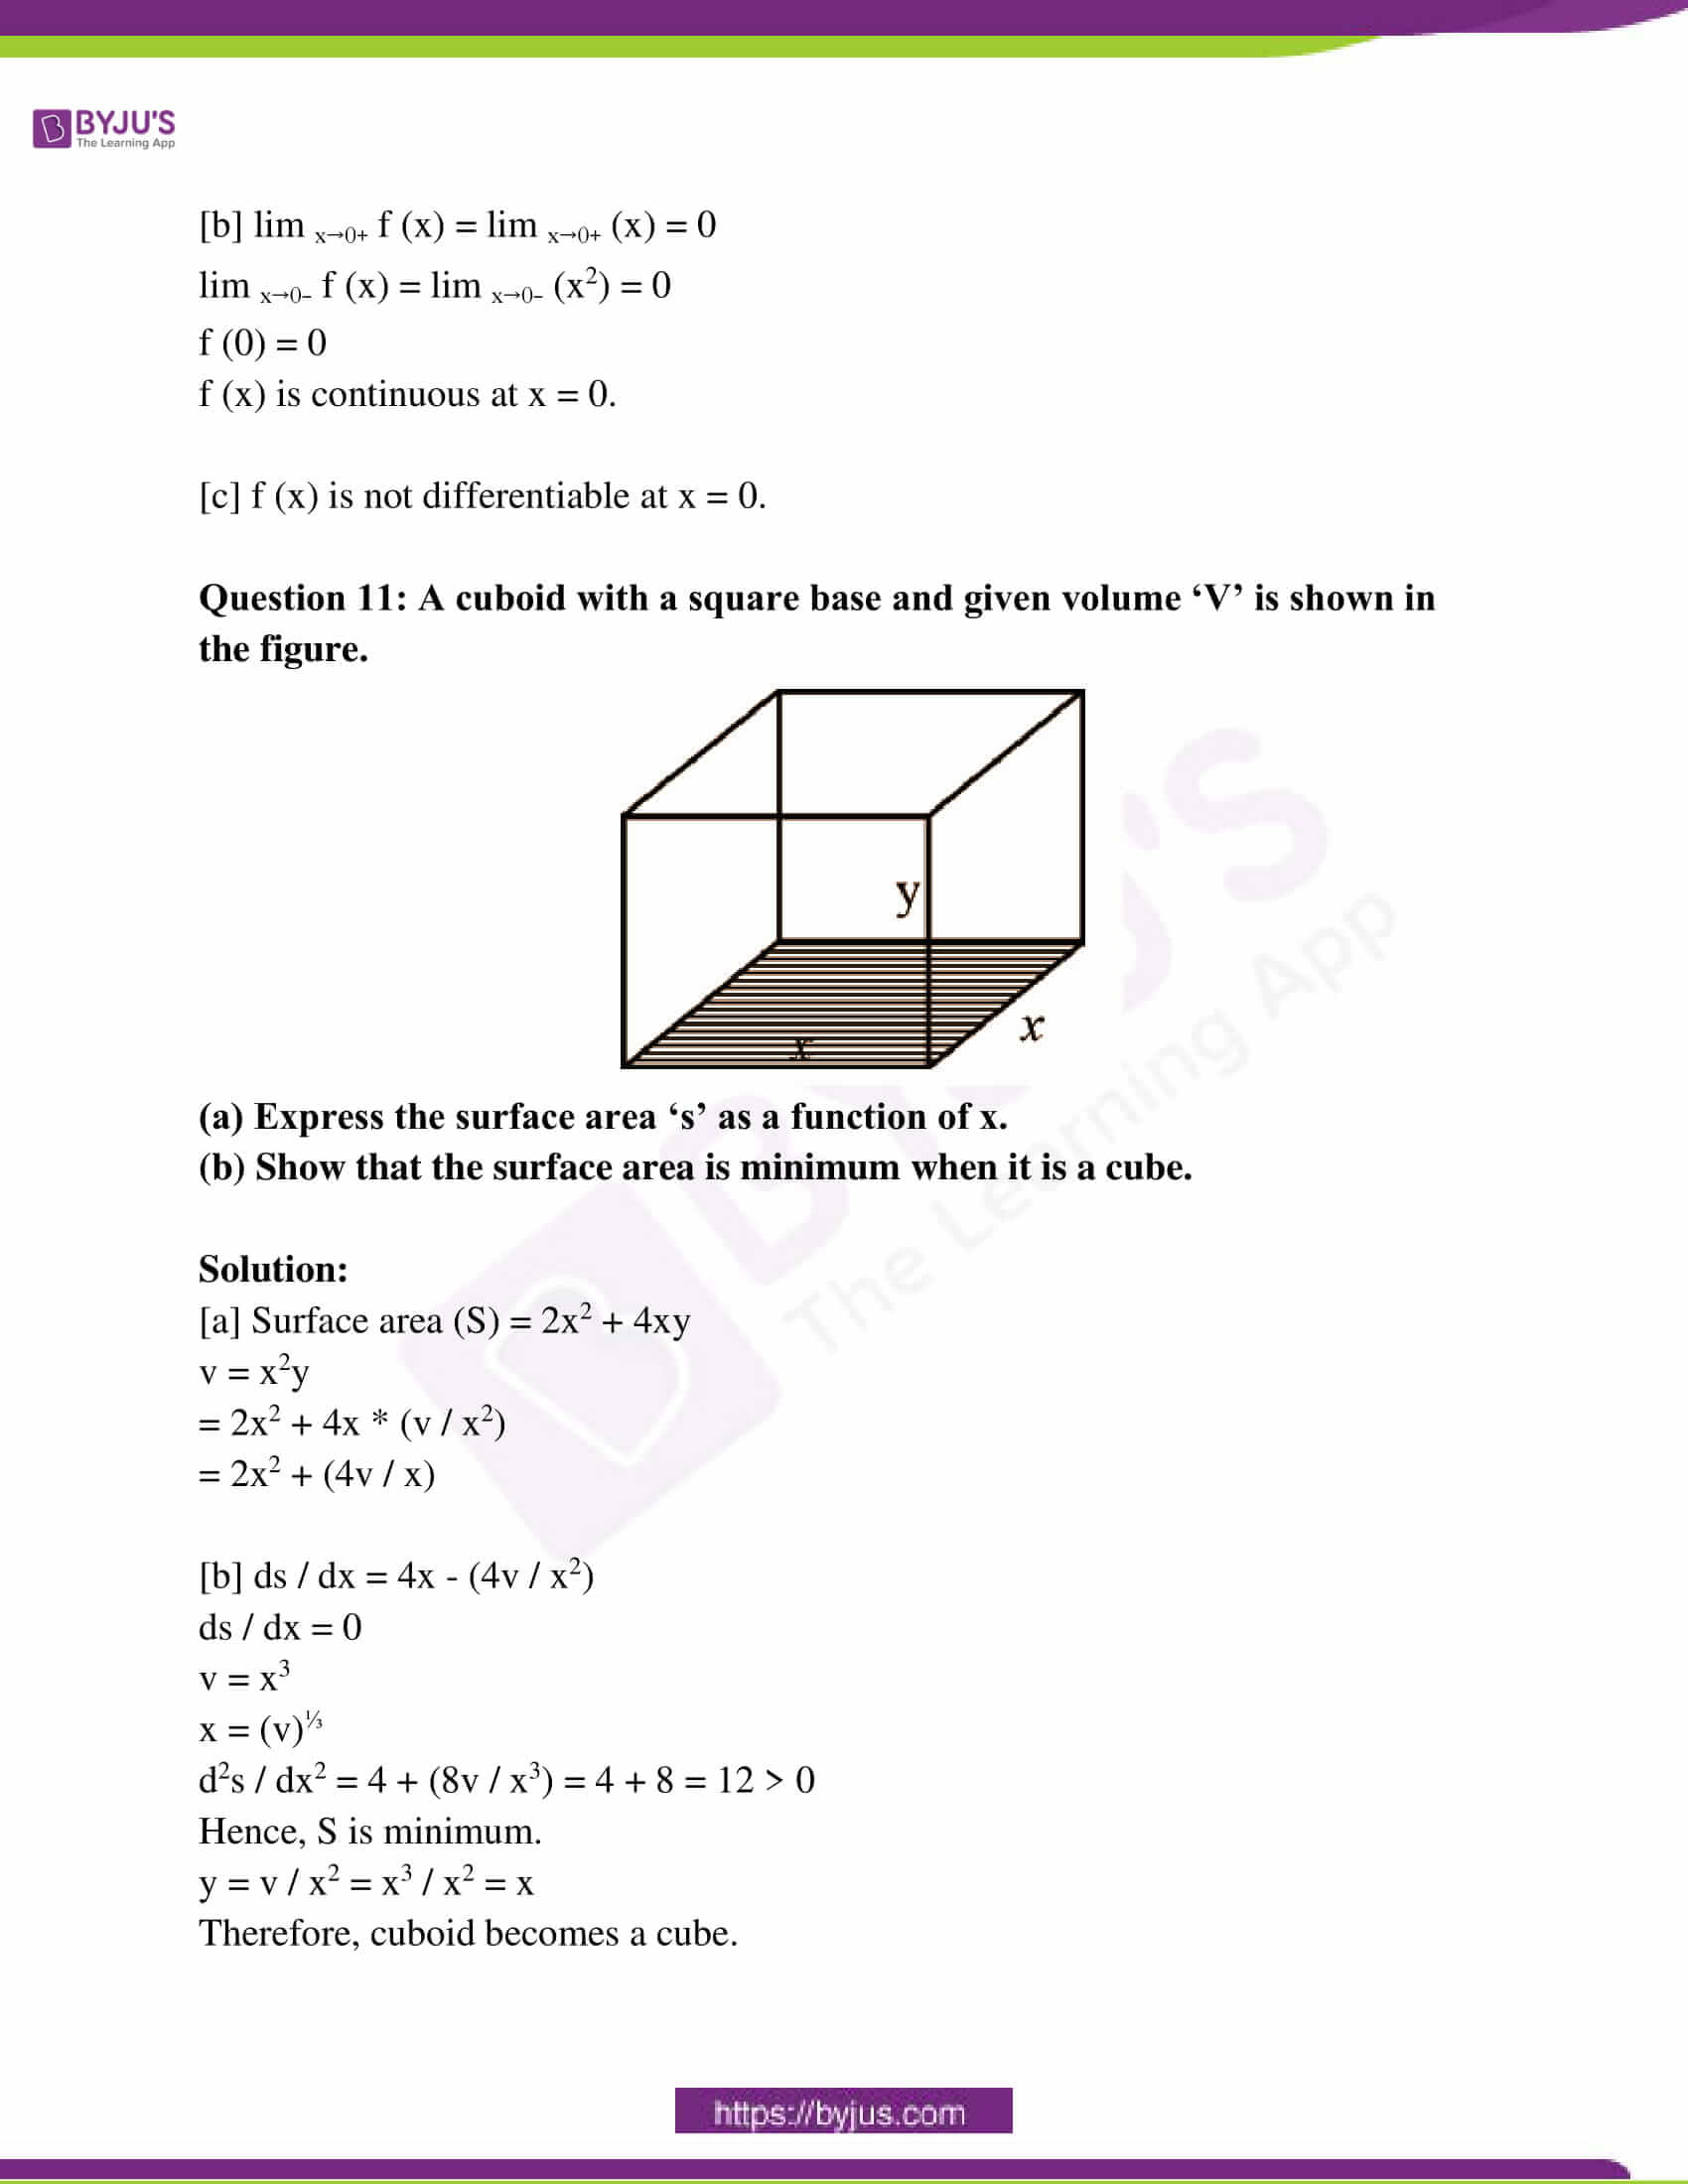 kerala class 12 examination question paper solutions march 2019 08